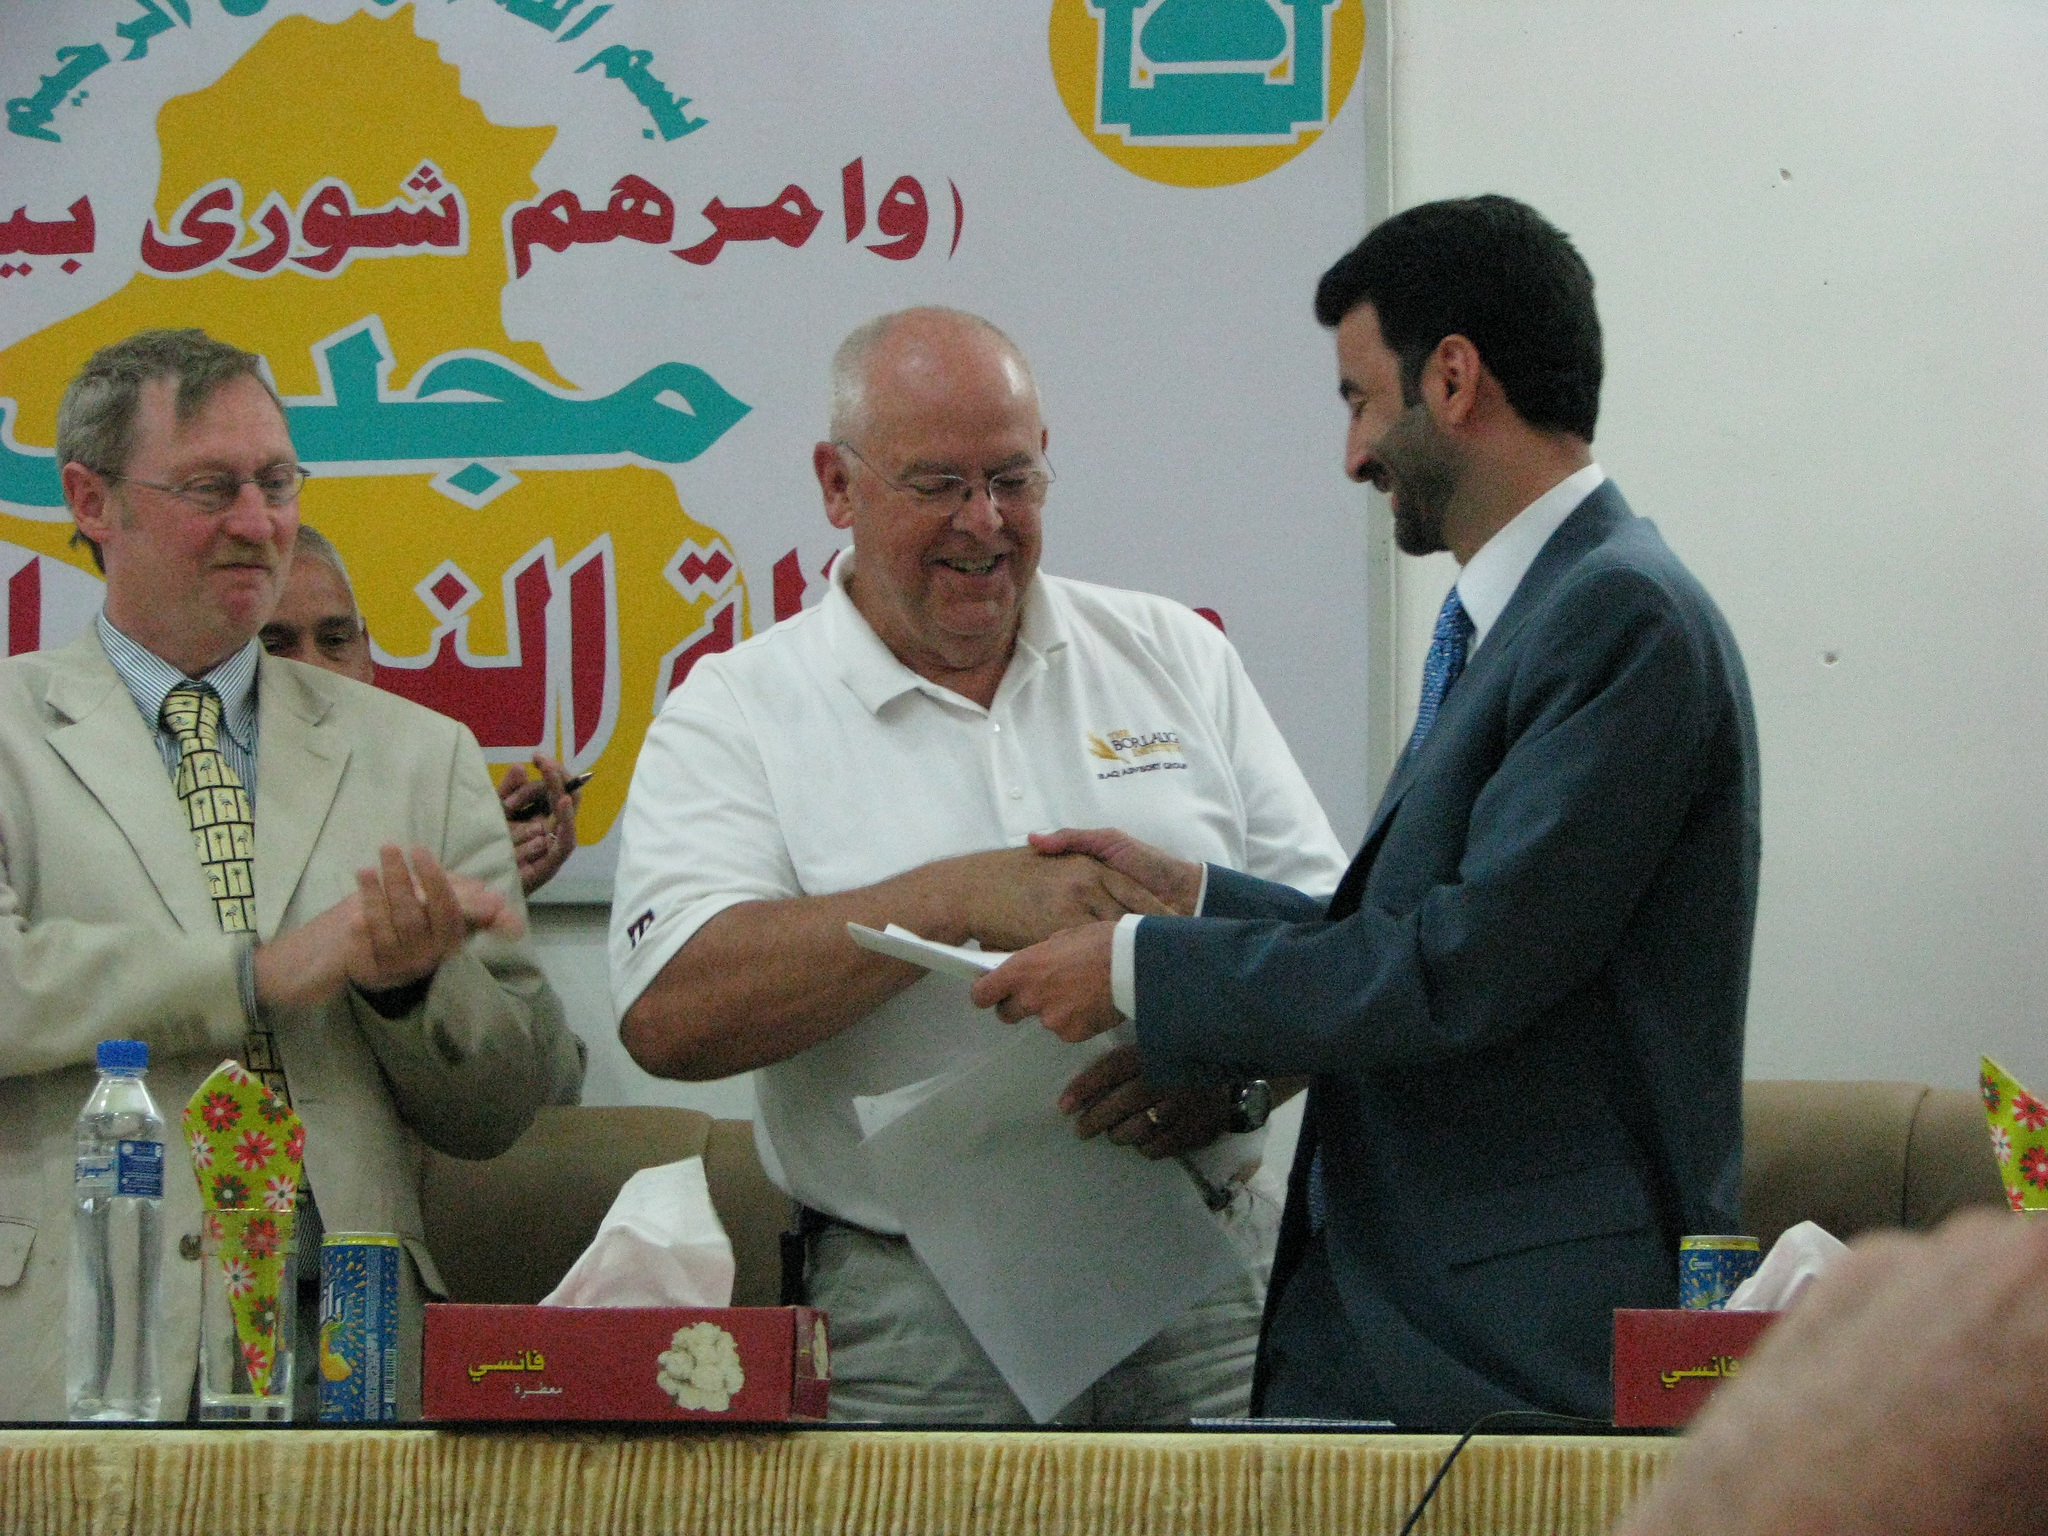 Team Borlaug - Texas A&M in Iraq (2008)